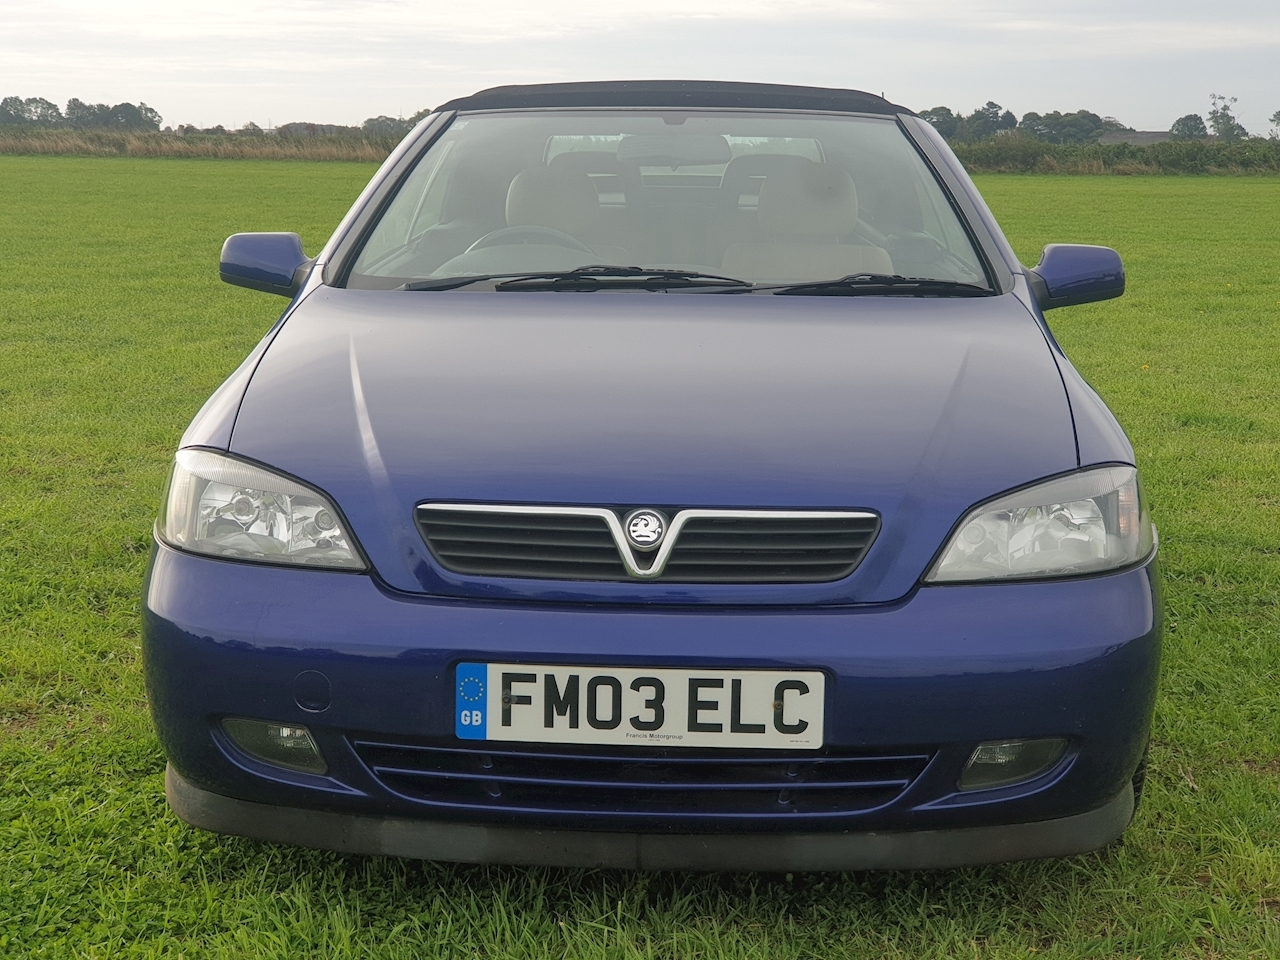 Vauxhall Astra Edition 100 2.2 2dr Convertible Manual Petrol